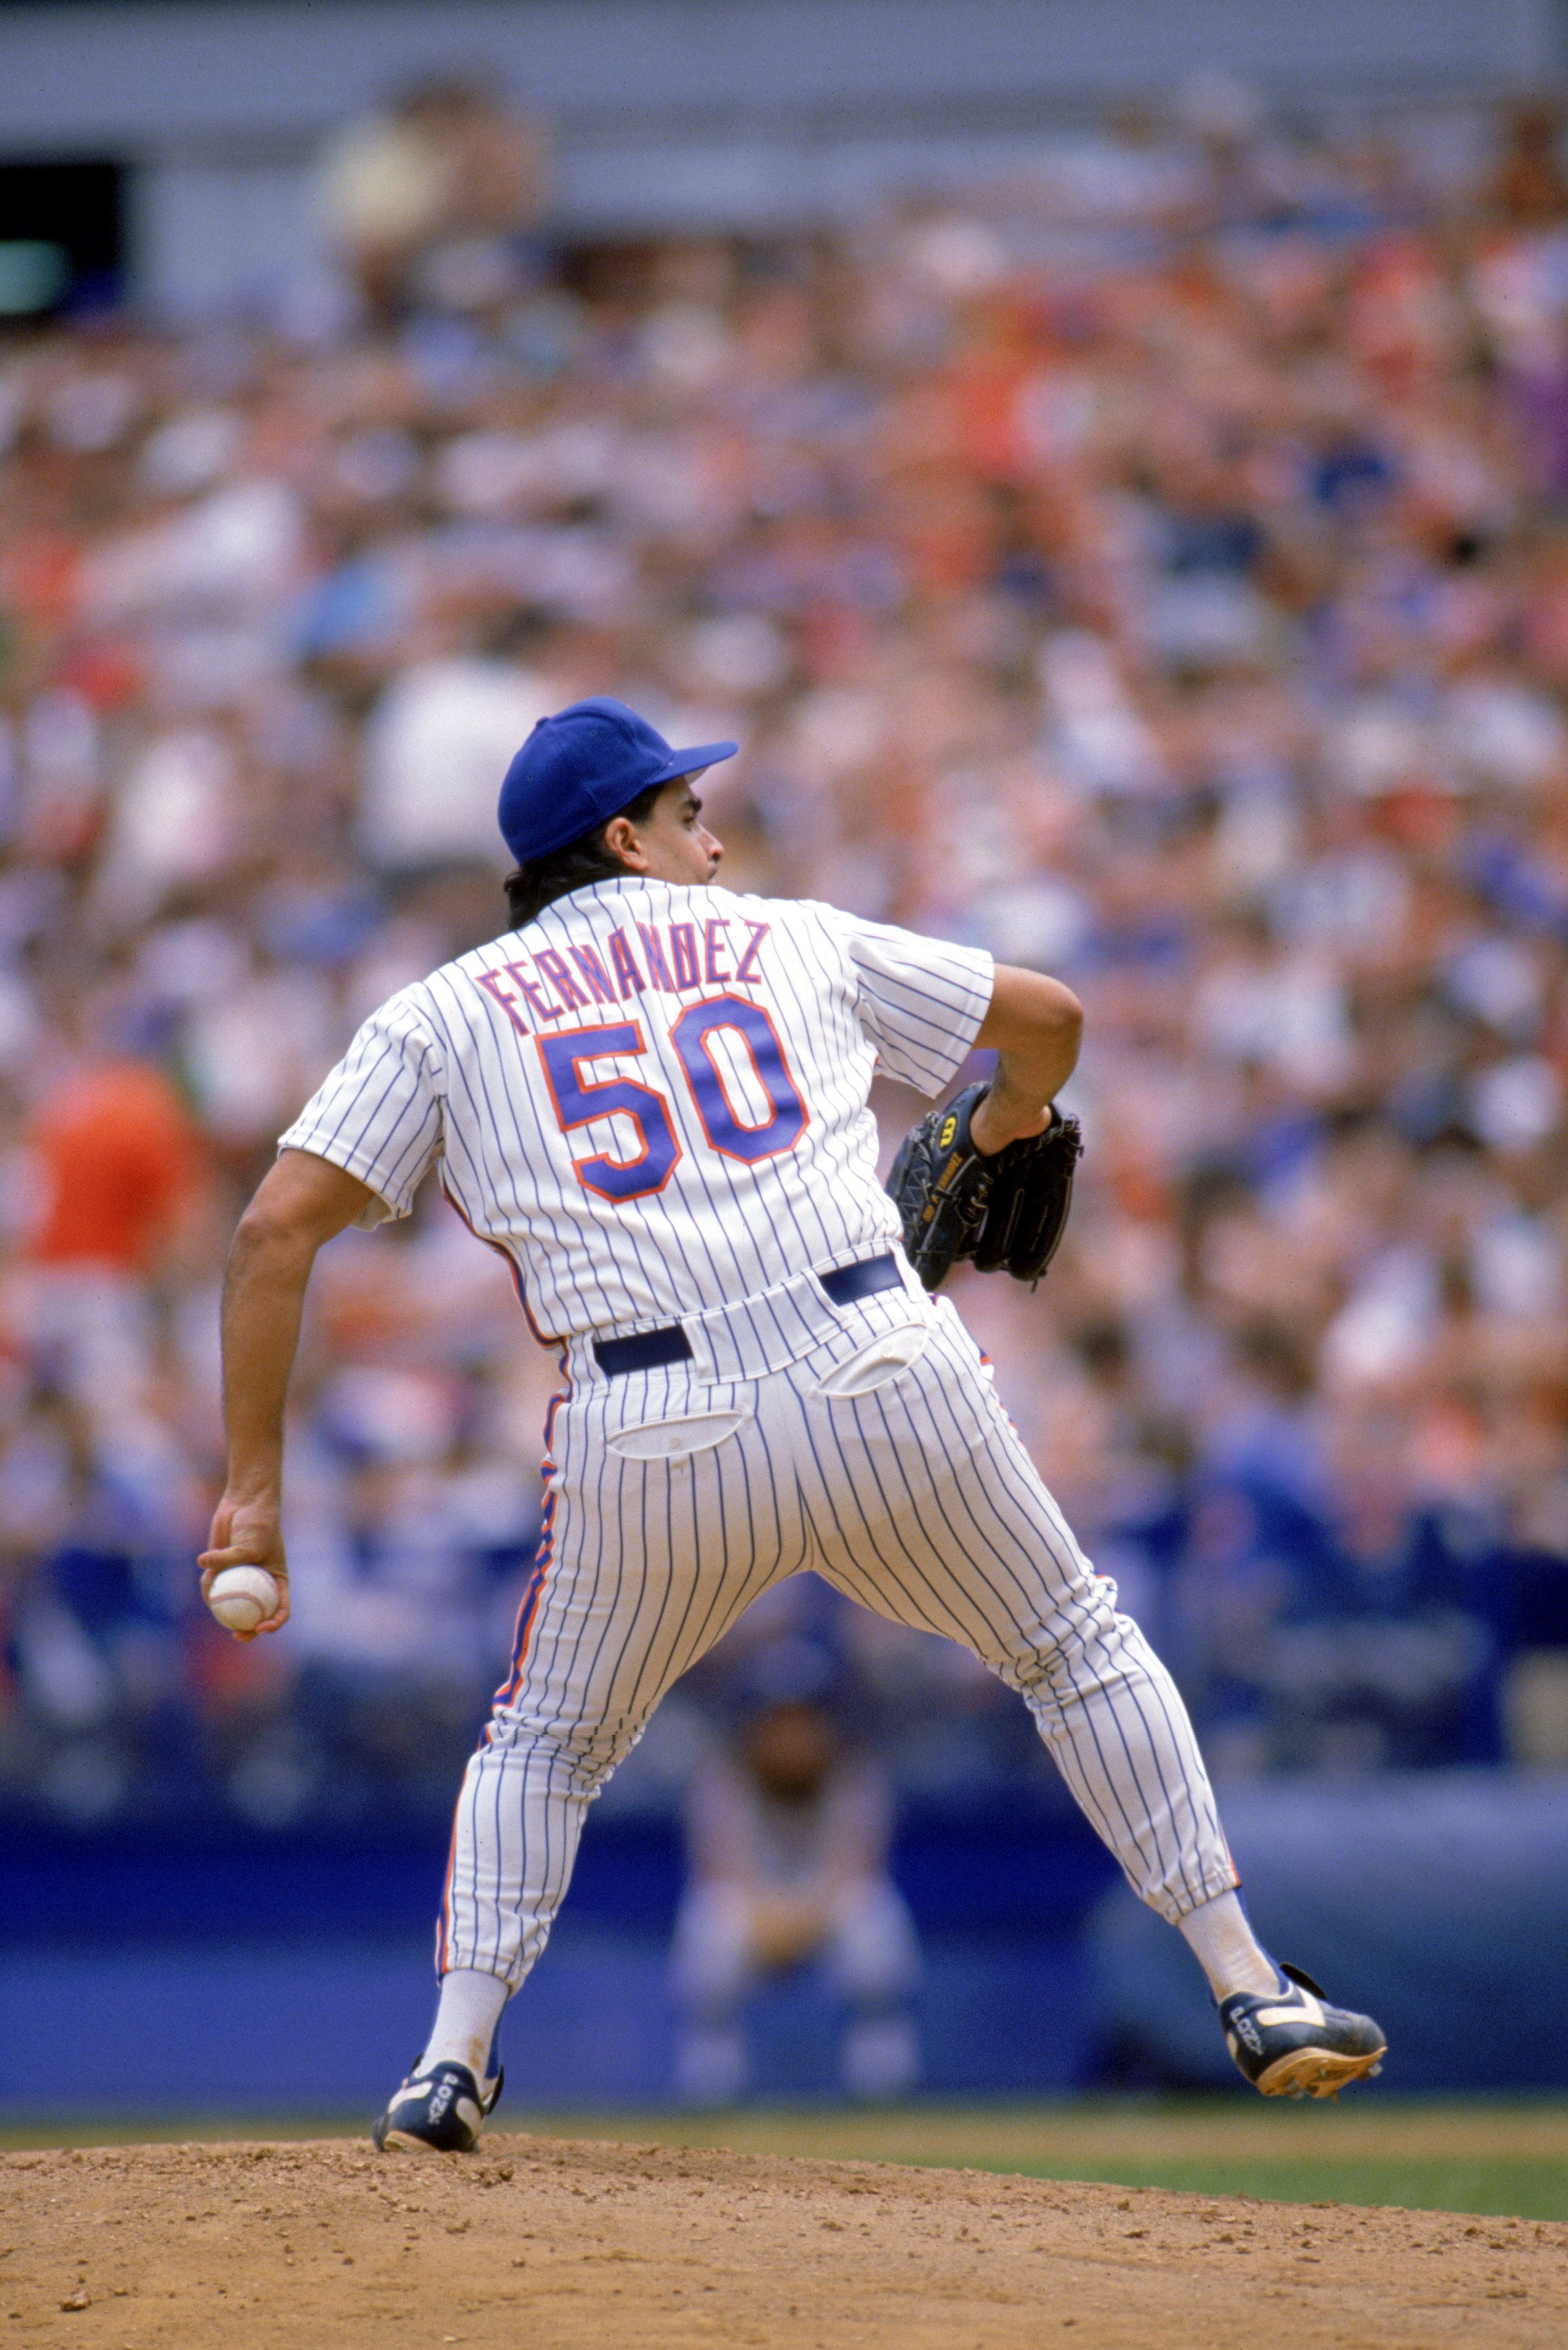 1989:  Sid Fernandez of the New York Mets winds back to pitch during a game in the 1989 season. ( Photo by: Rick Stewart/Getty Images)